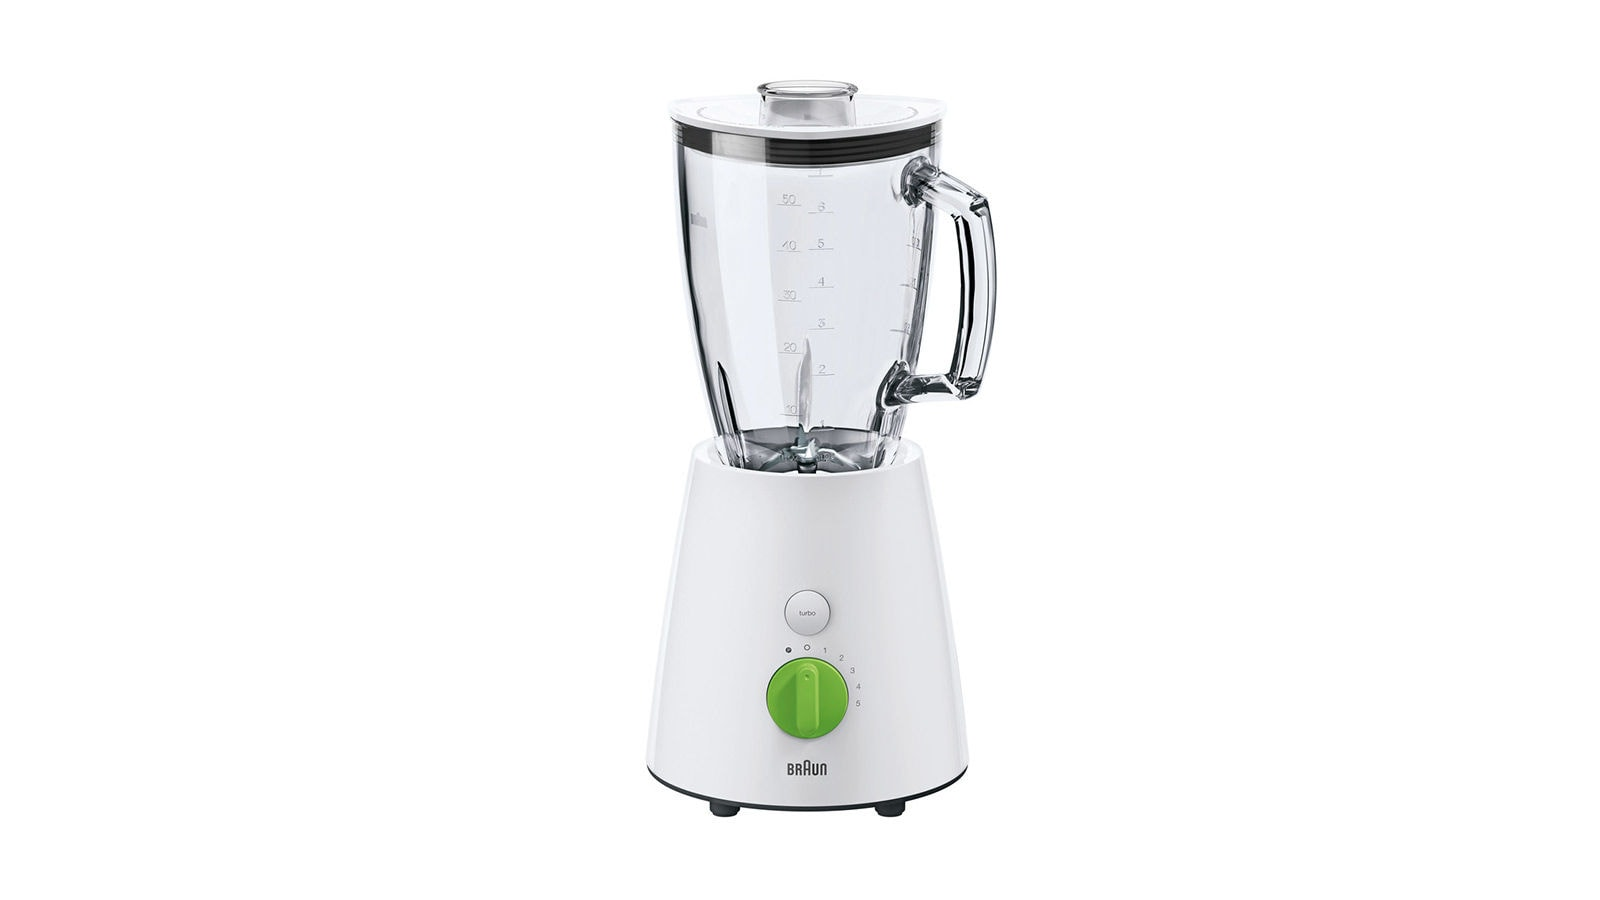 TributeCollection Jug blender JB 3060